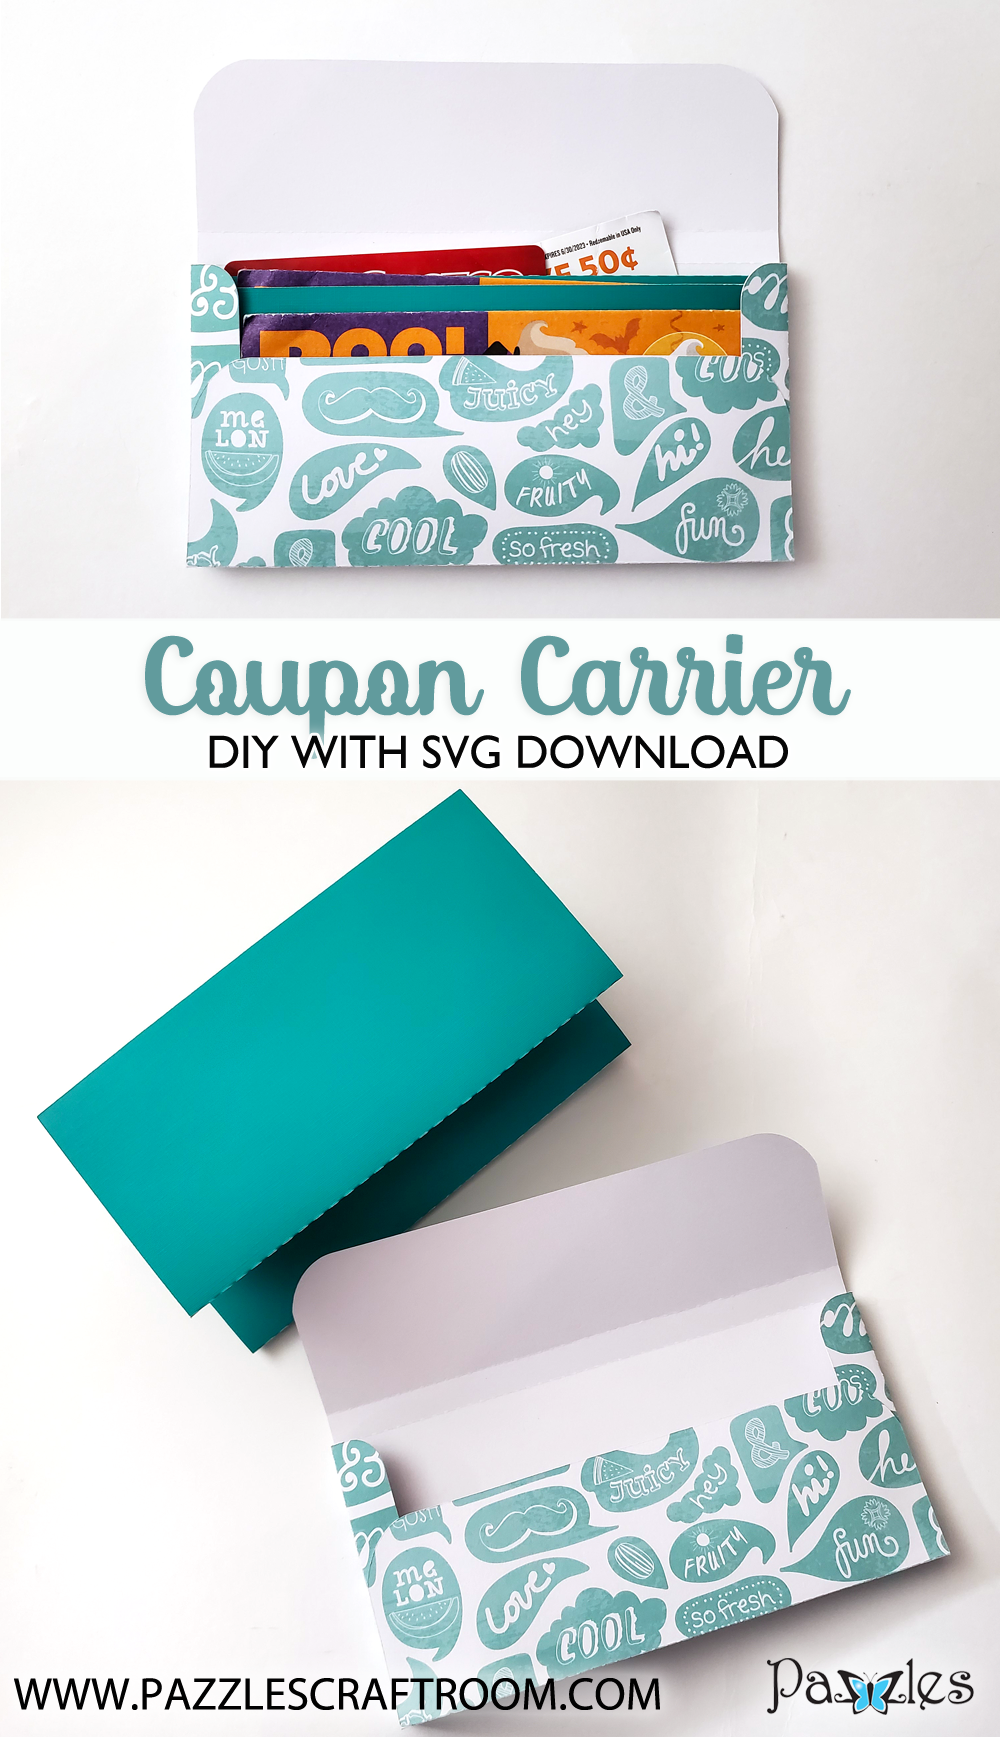 Pazzles DIY Coupon Carrier with instant SVG download. Compatible with all major electronic cutters including Pazzles Inspiration, Cricut, and Silhouette Cameo. Design by Renee Smart.